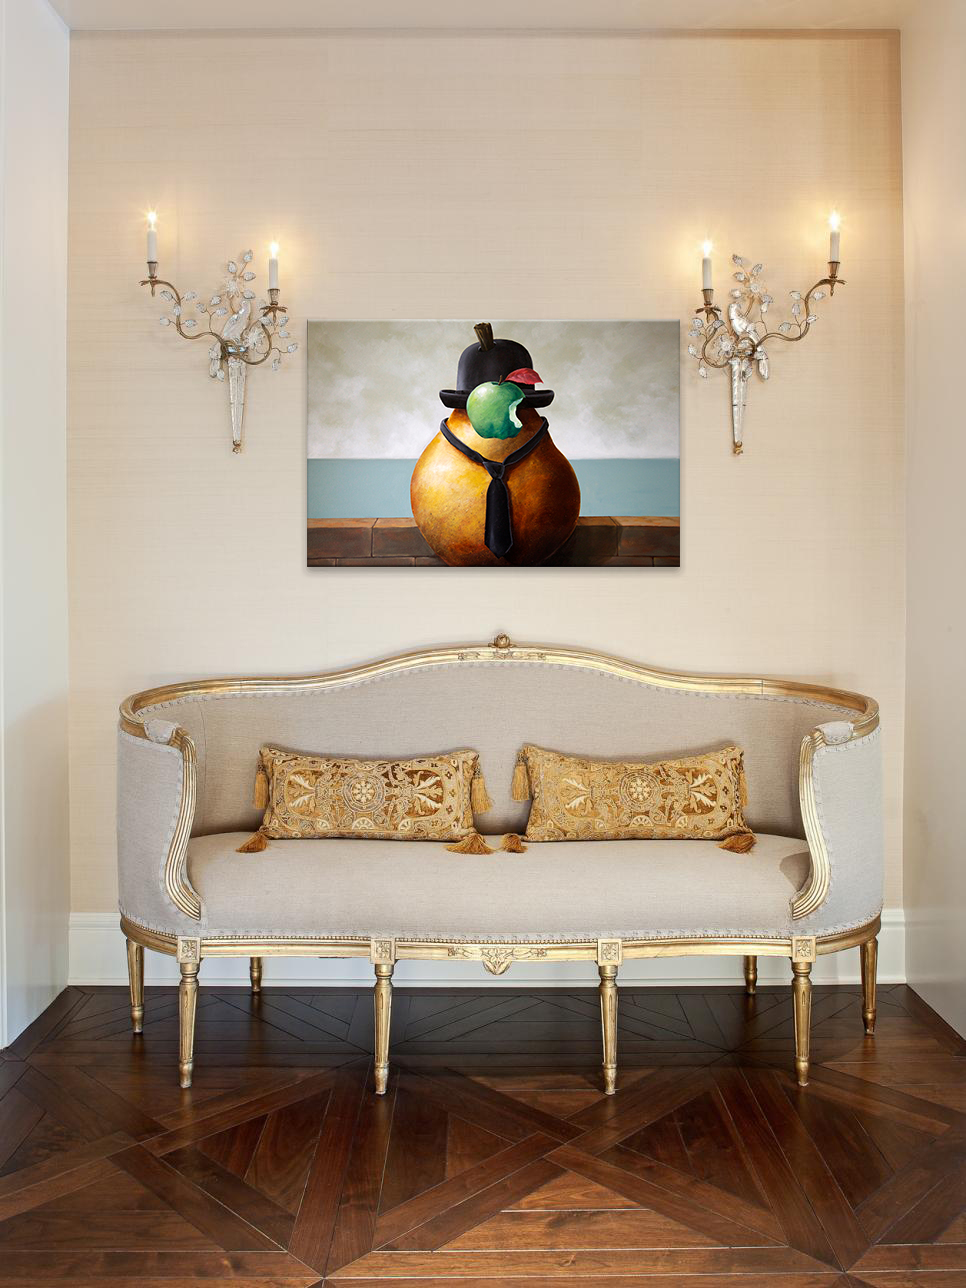 interior-design-artwork-on-wallinterior-design-artwork-on-wall-appetite-bill-higginson.jpg